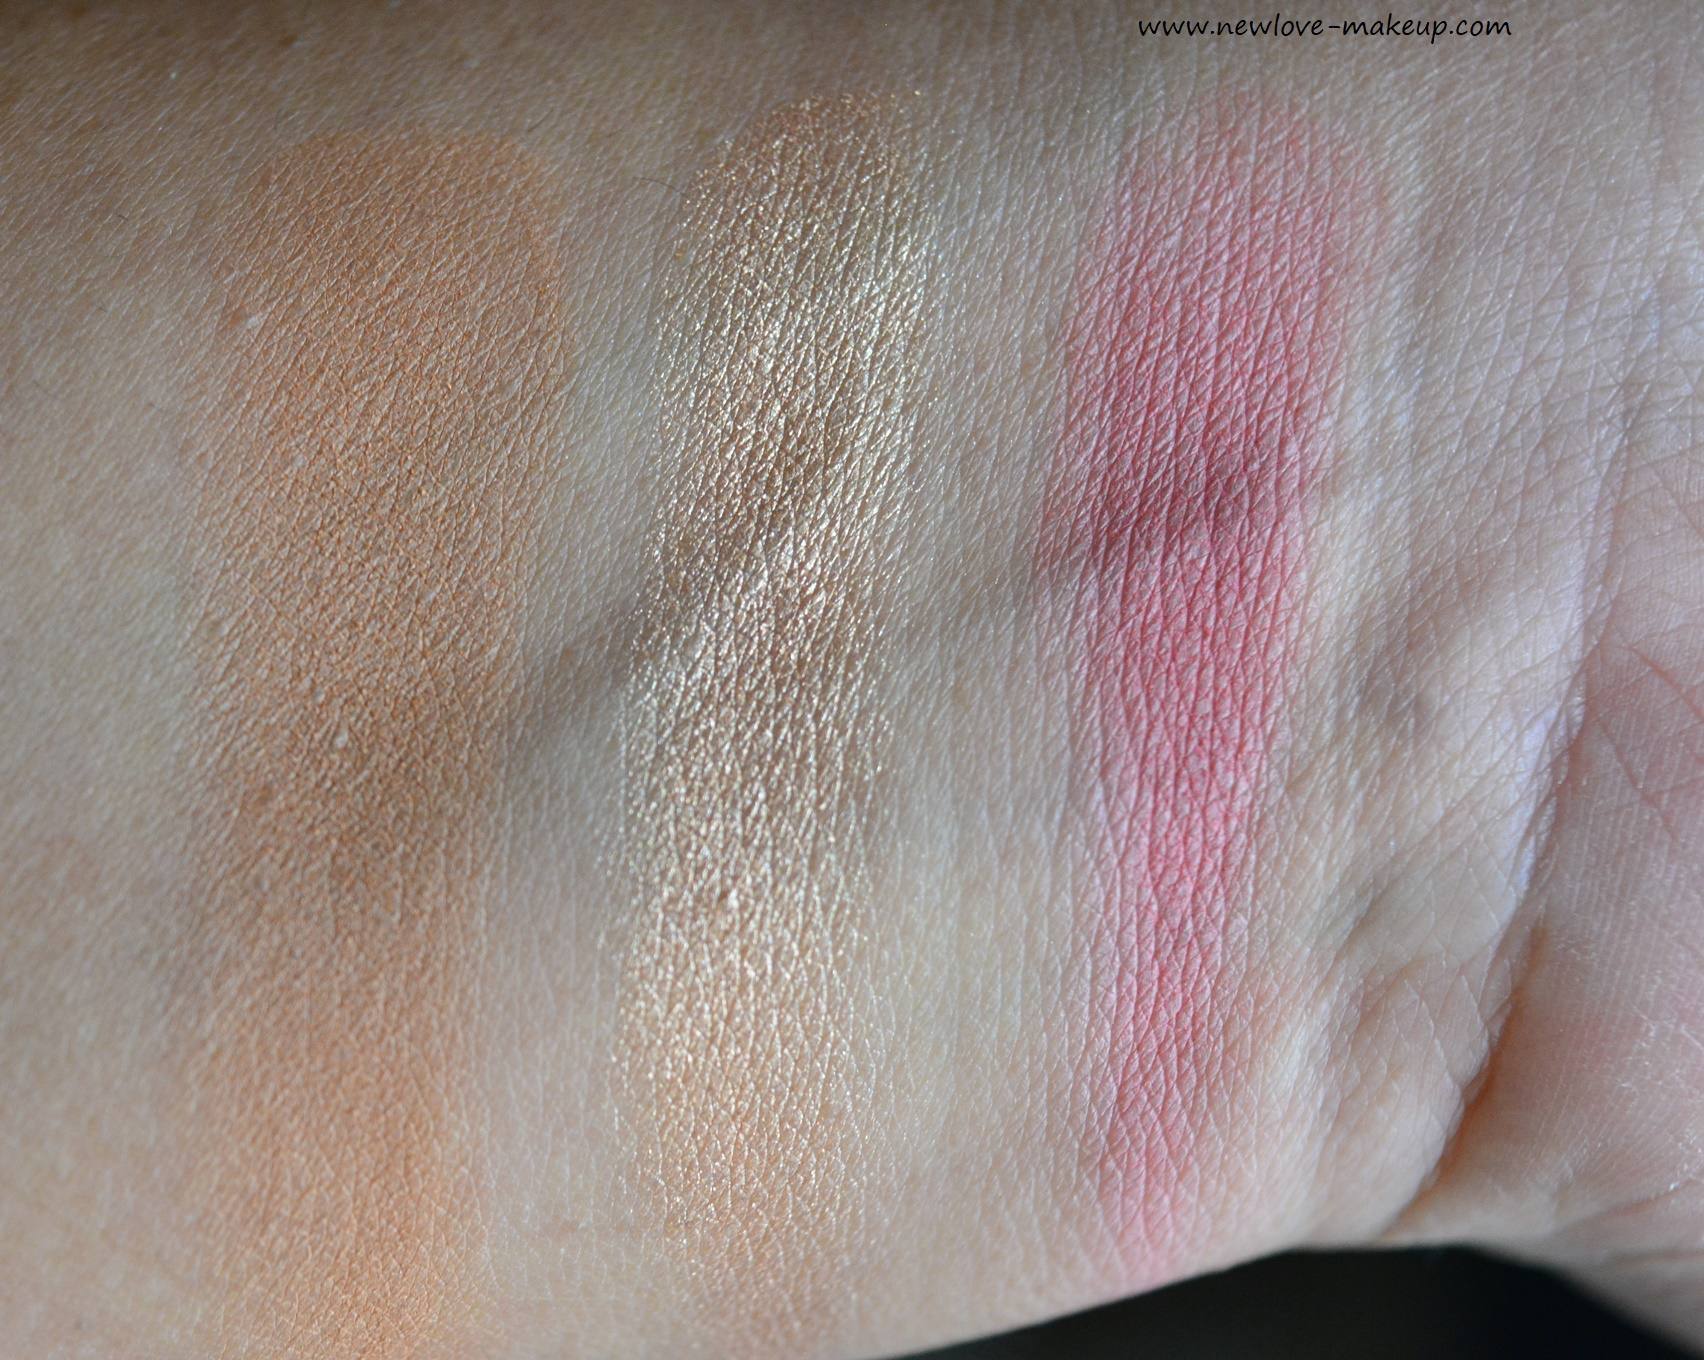 Sugar Cosmetics Contour De Force Palettes/Minis Review, Swatches + Giveaway